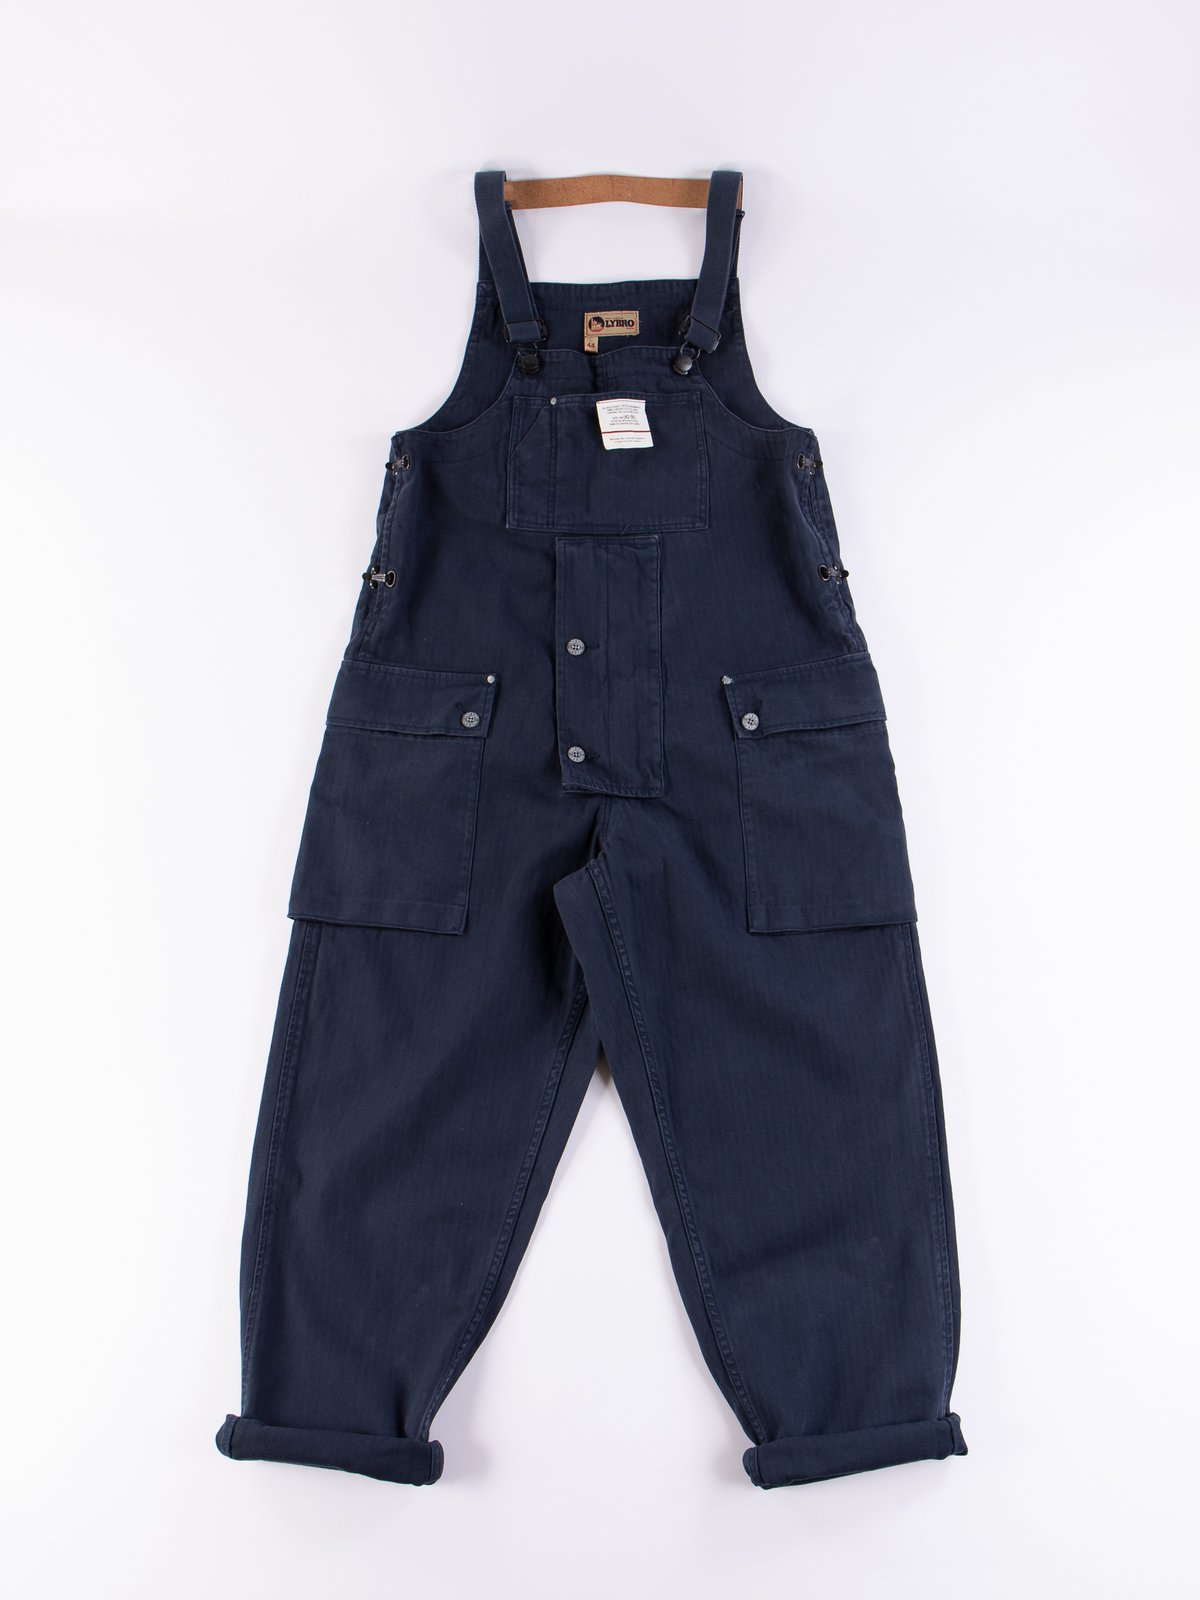 f148c6b0154268 Lybro Black Navy Naval Dungaree by Nigel Cabourn – The Bureau ...